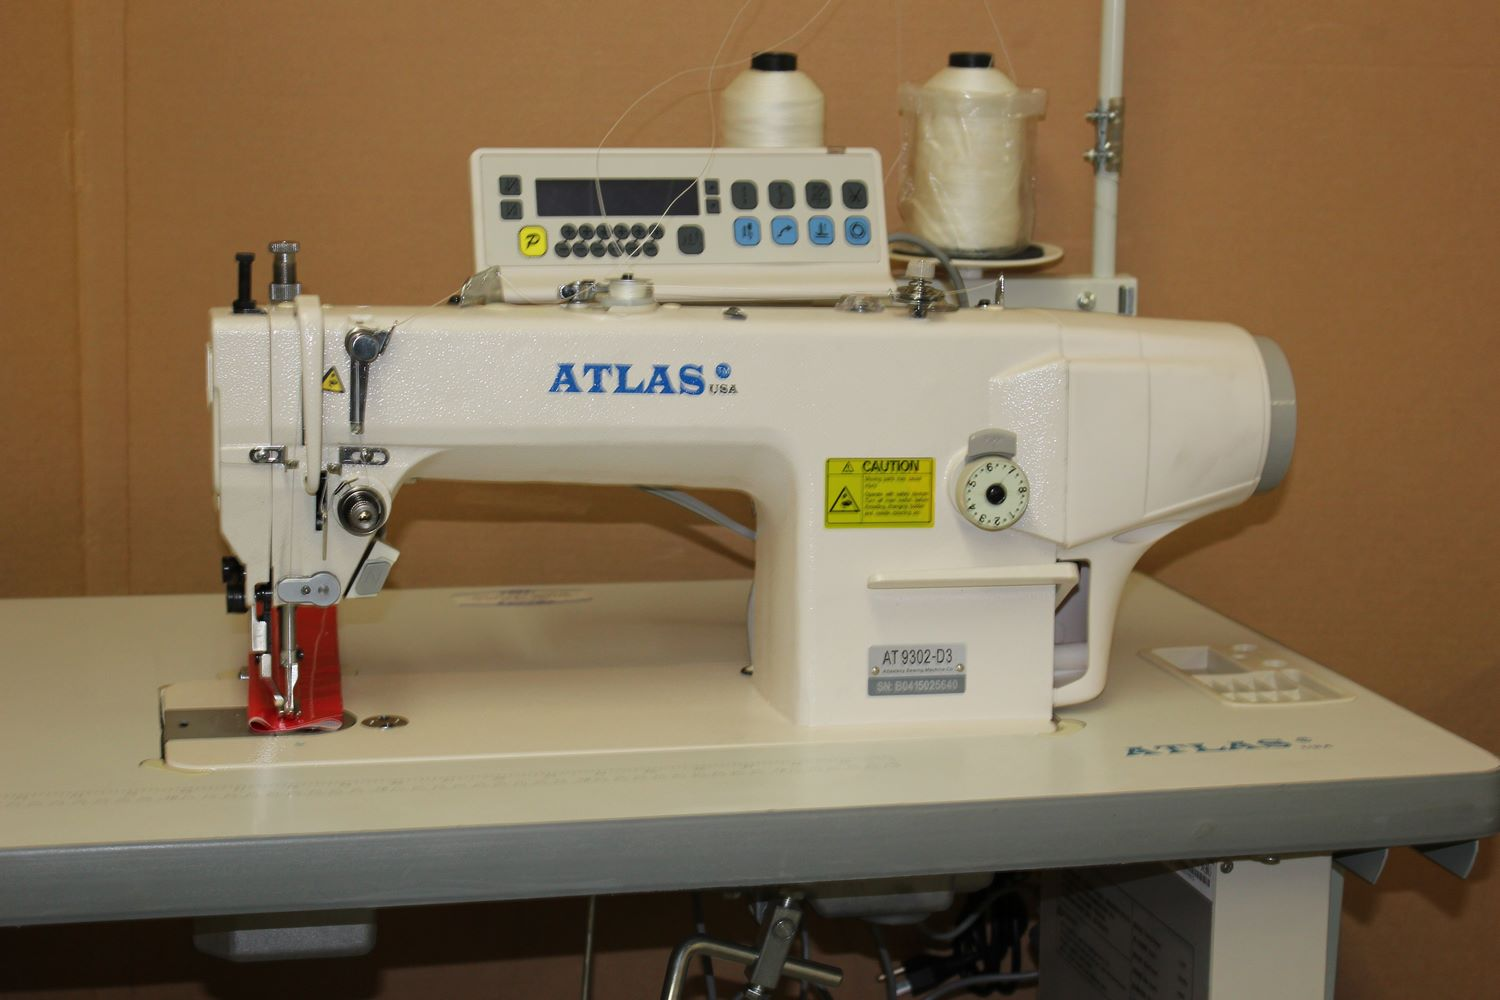 Automatic Atlasusa Walking Foot Machine For Heavy Material